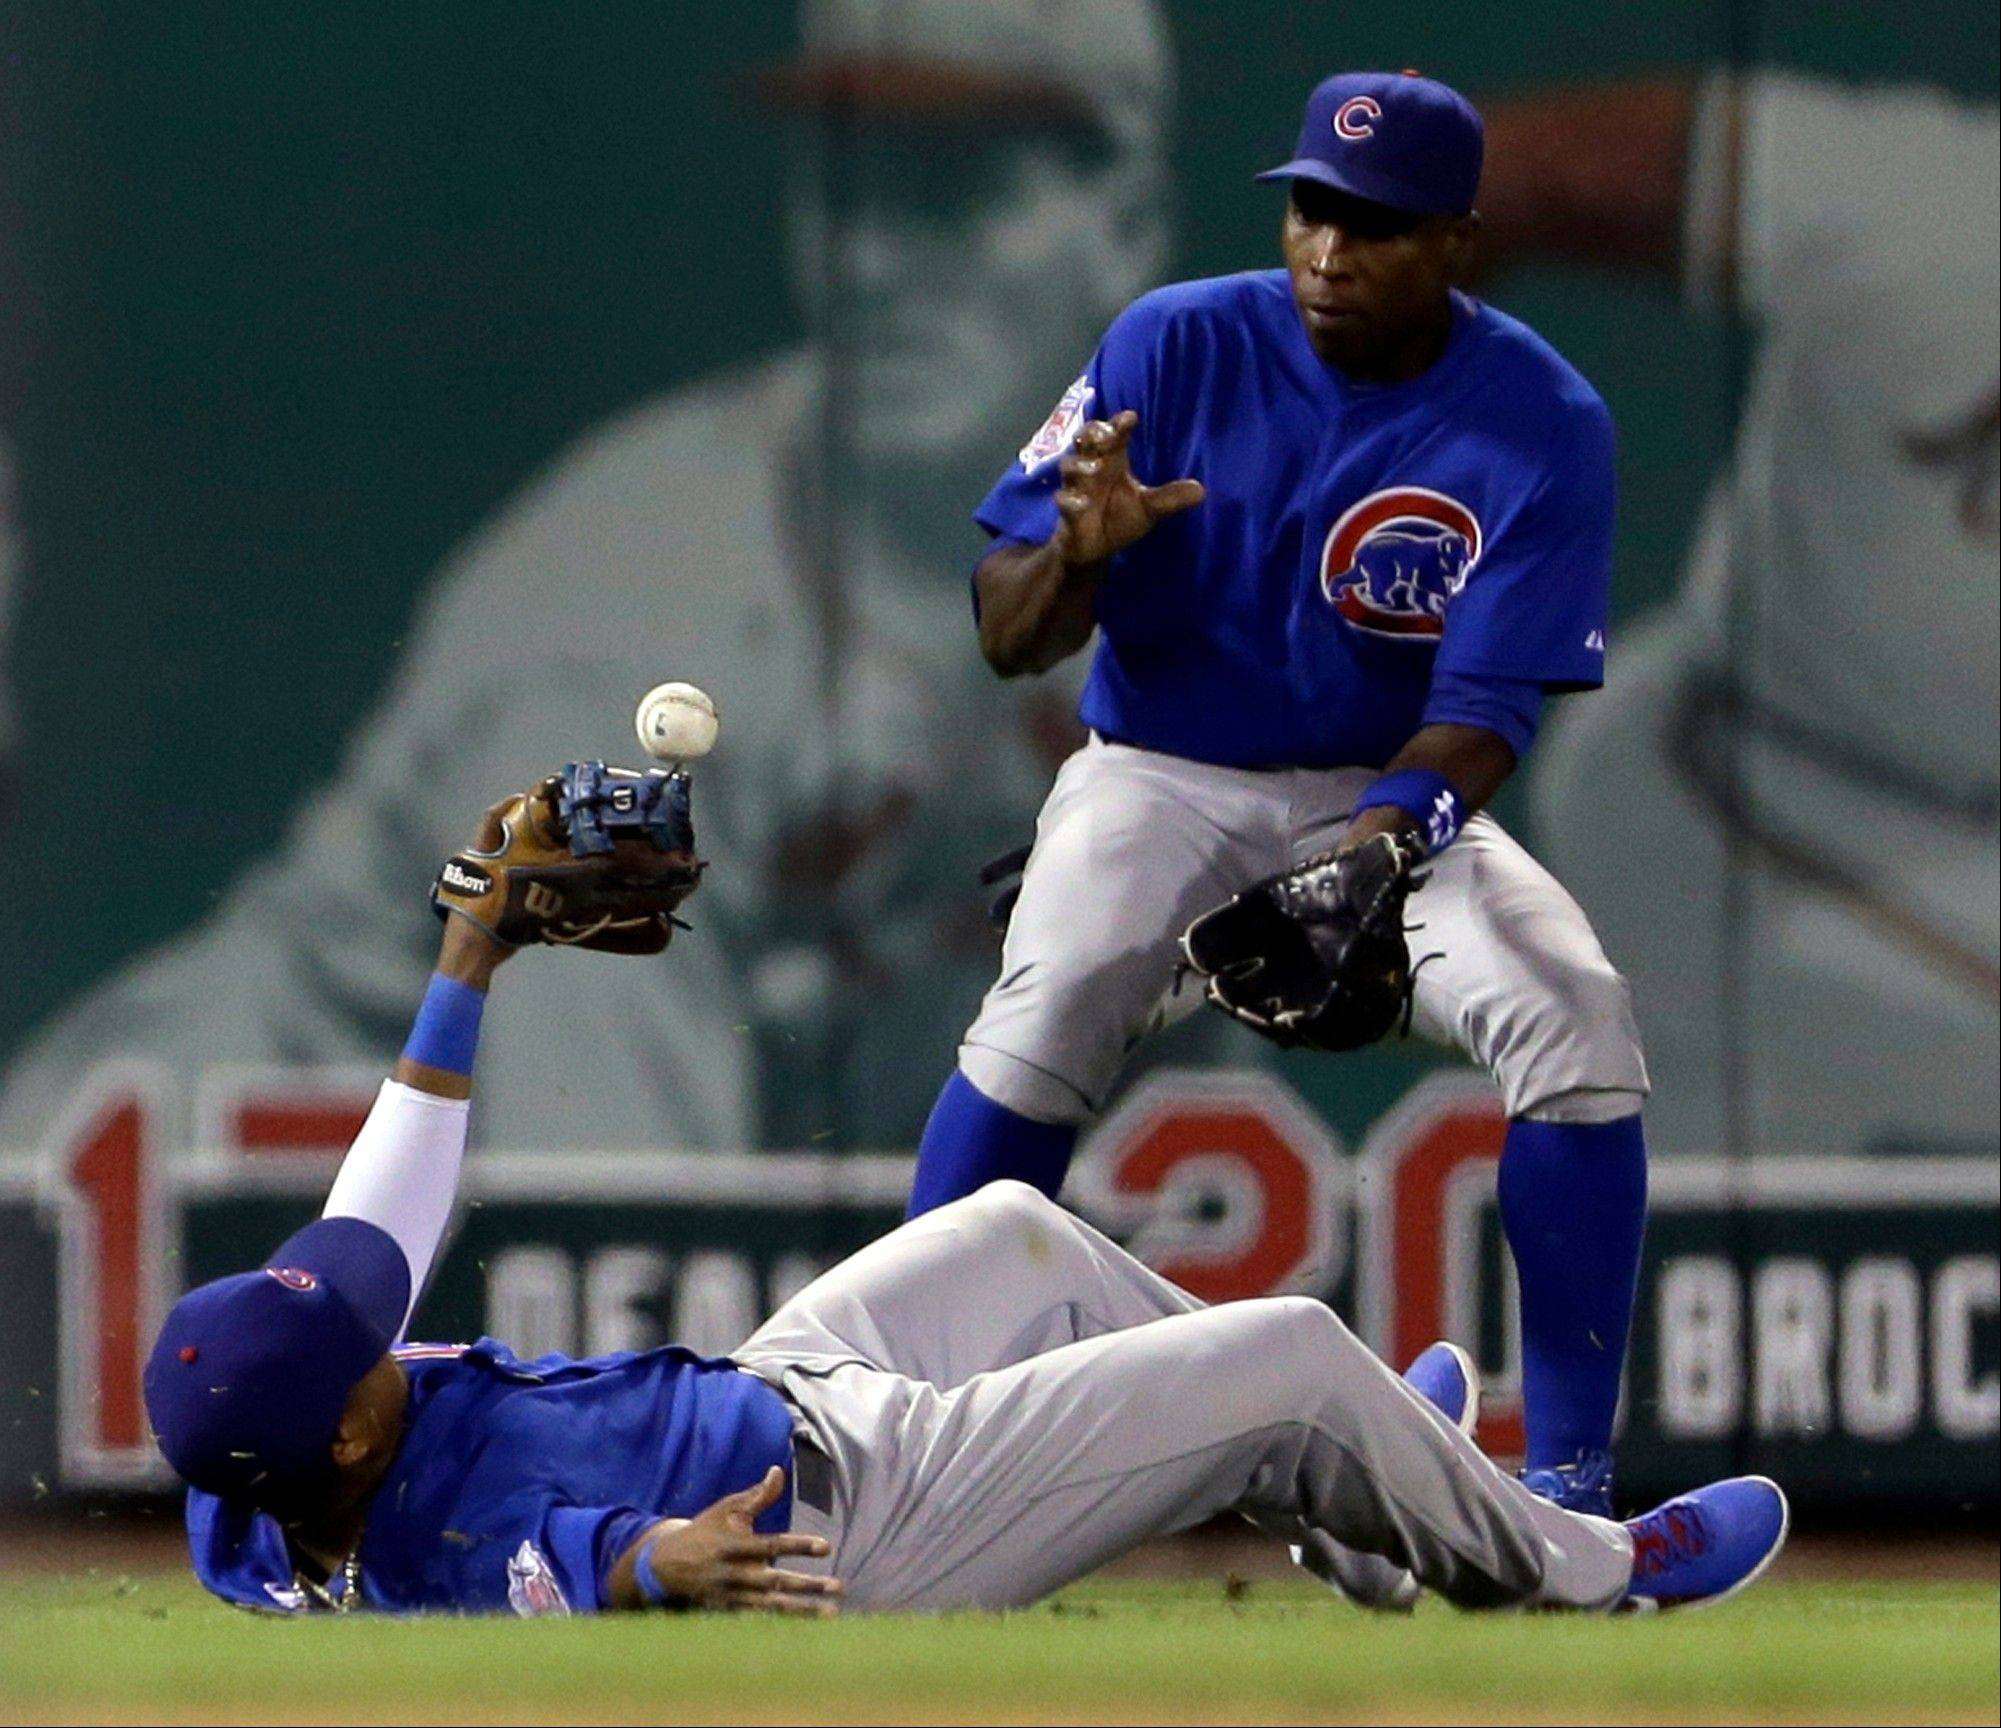 Chicago Cubs shortstop Starlin Castro, bottom, misses a ball hit by St. Louis Cardinals' Matt Holliday for a single as Cubs left fielder Alfonso Soriano watches during the ninth inning of a baseball game on Tuesday, June 18, 2013, in St. Louis.